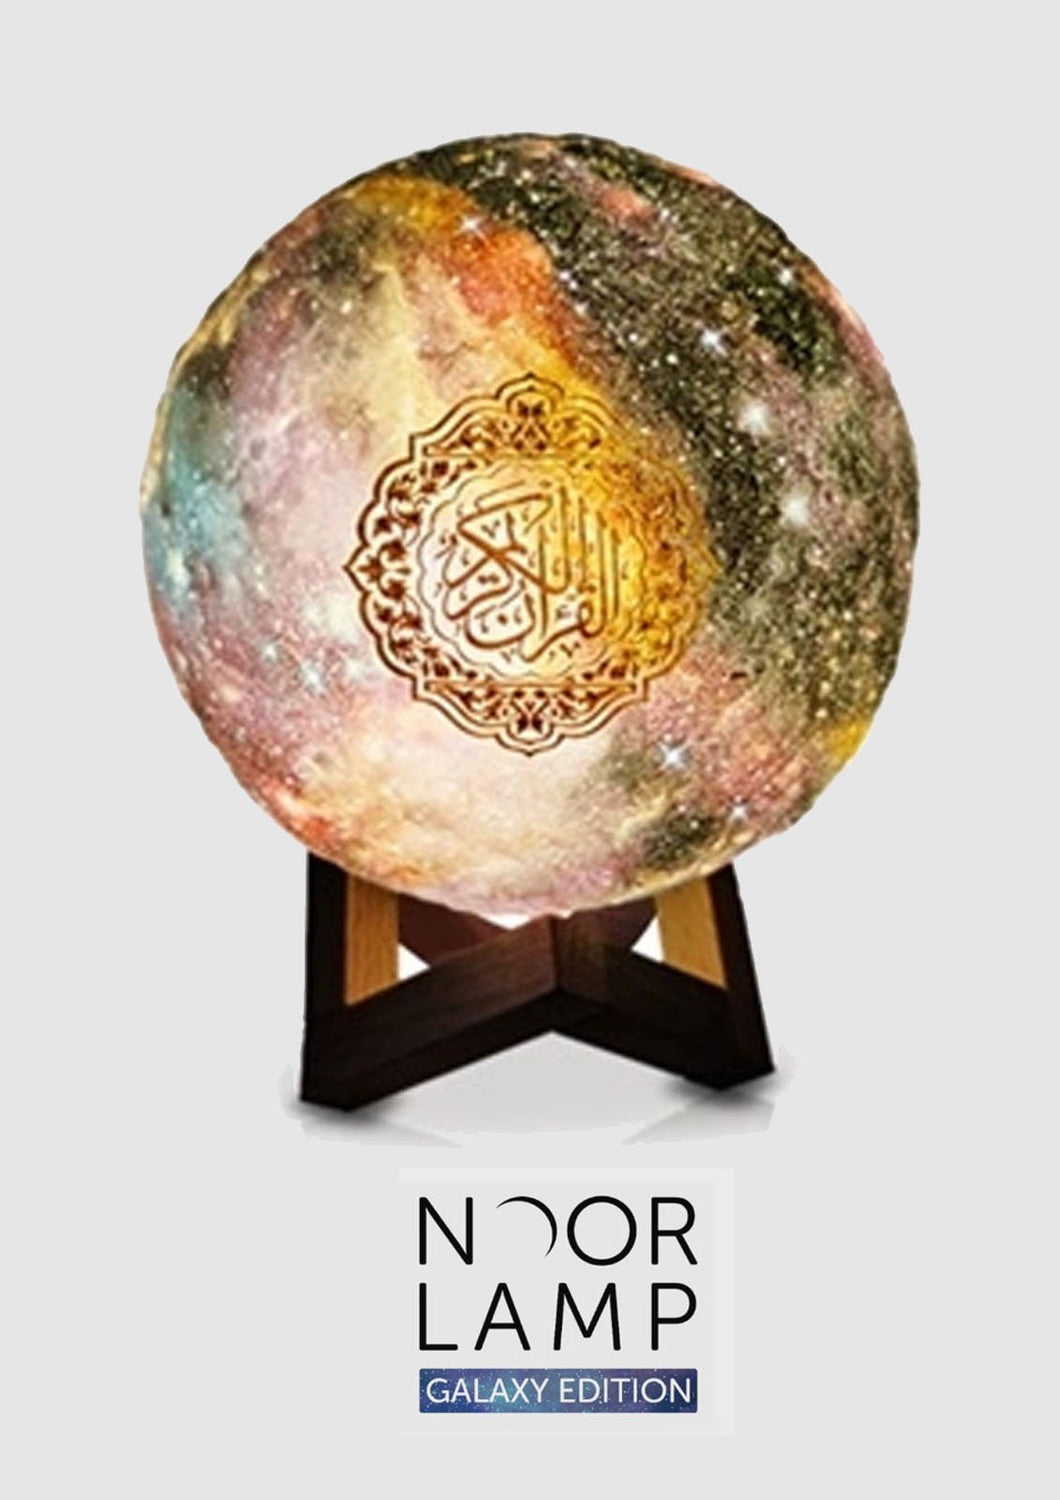 Noor Lamp ( Galaxy Edition ) SPECIAL SALE OFFER LIMITED TIME ONLY !